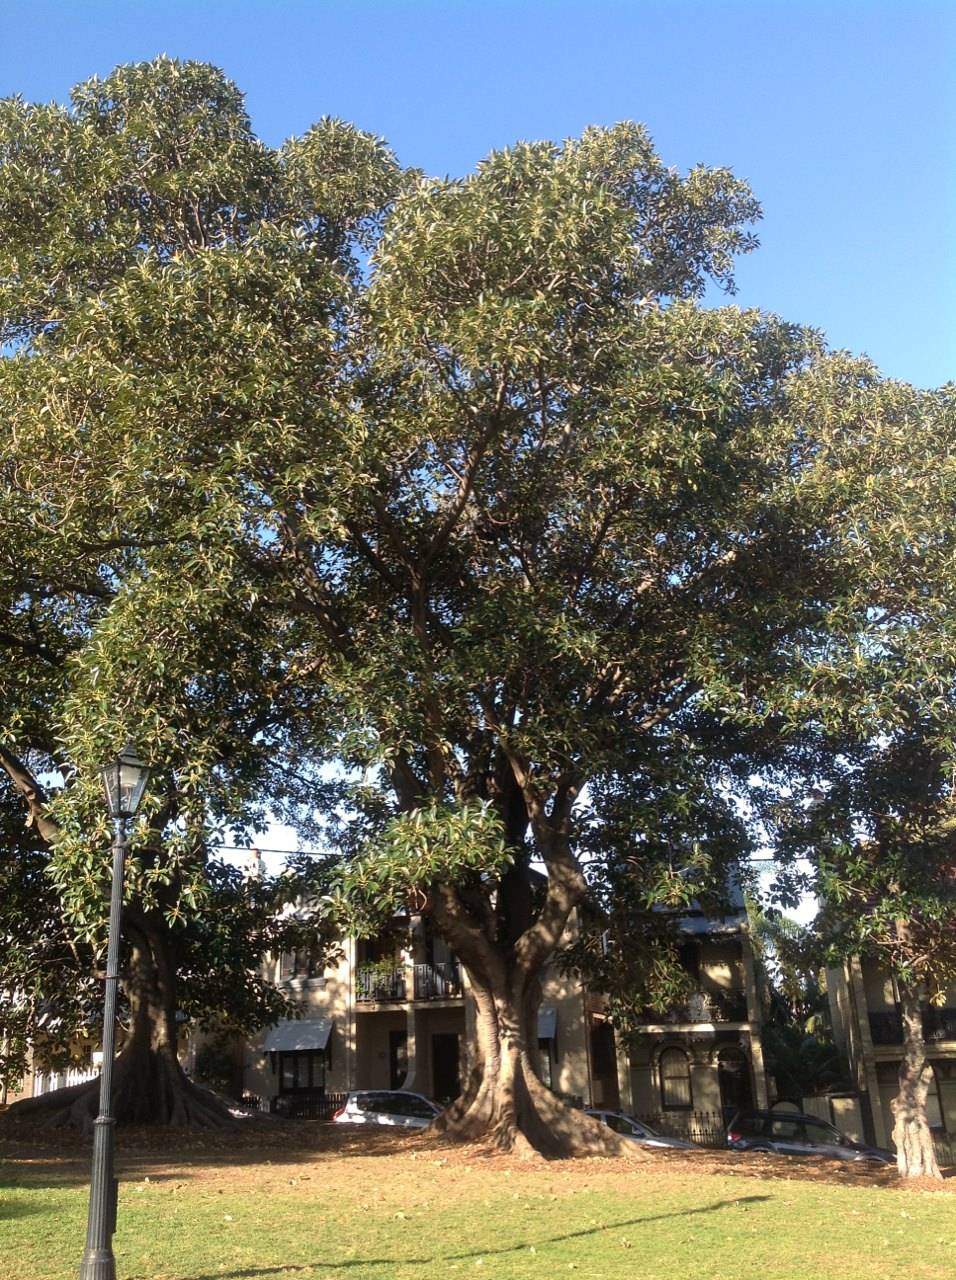 Moreton Bay Figs